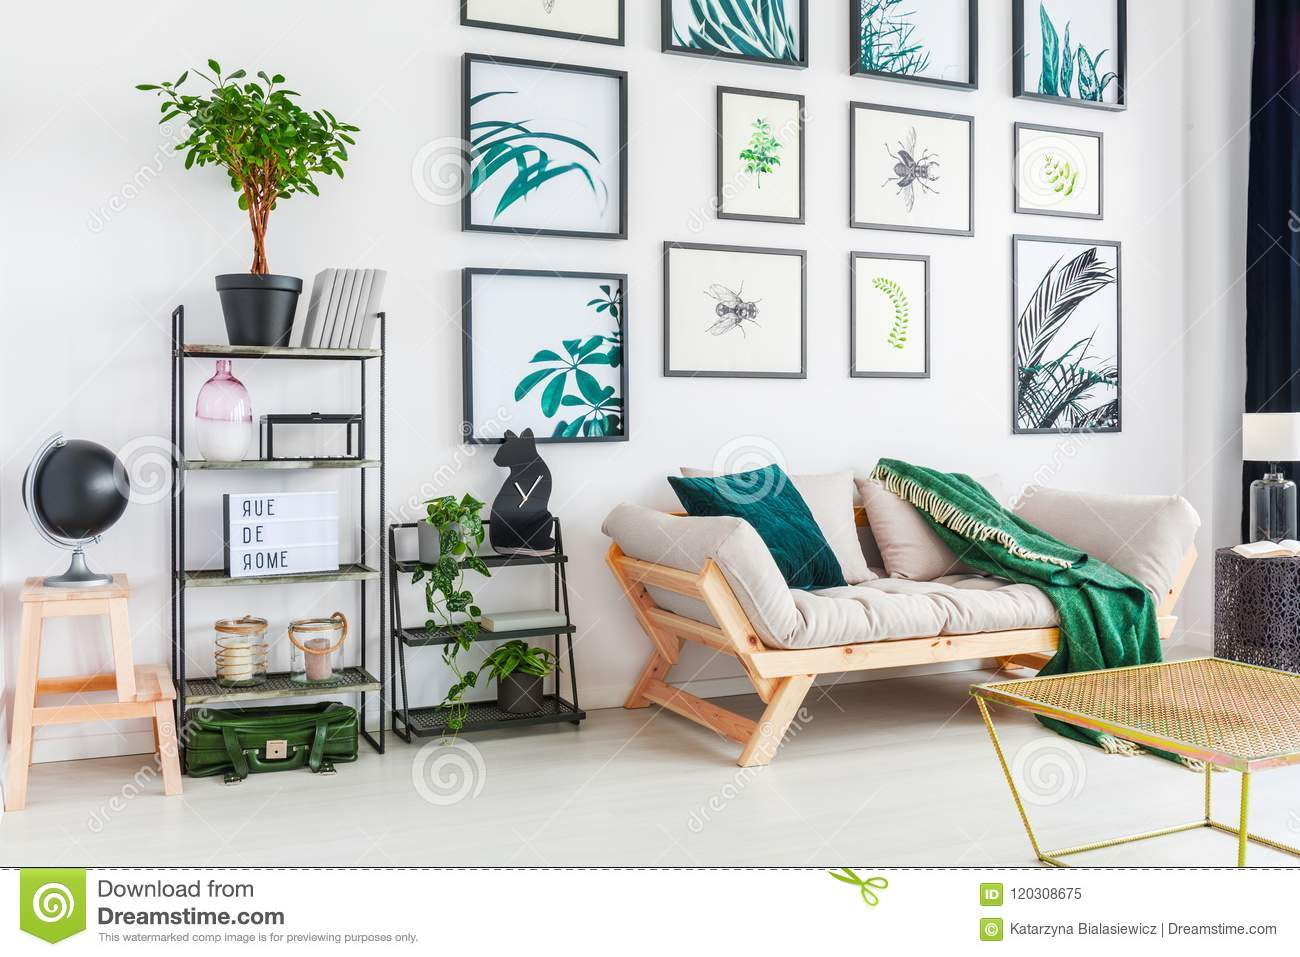 . Real Photo Of A Couch Standing Next To Two Shelves With Ornament